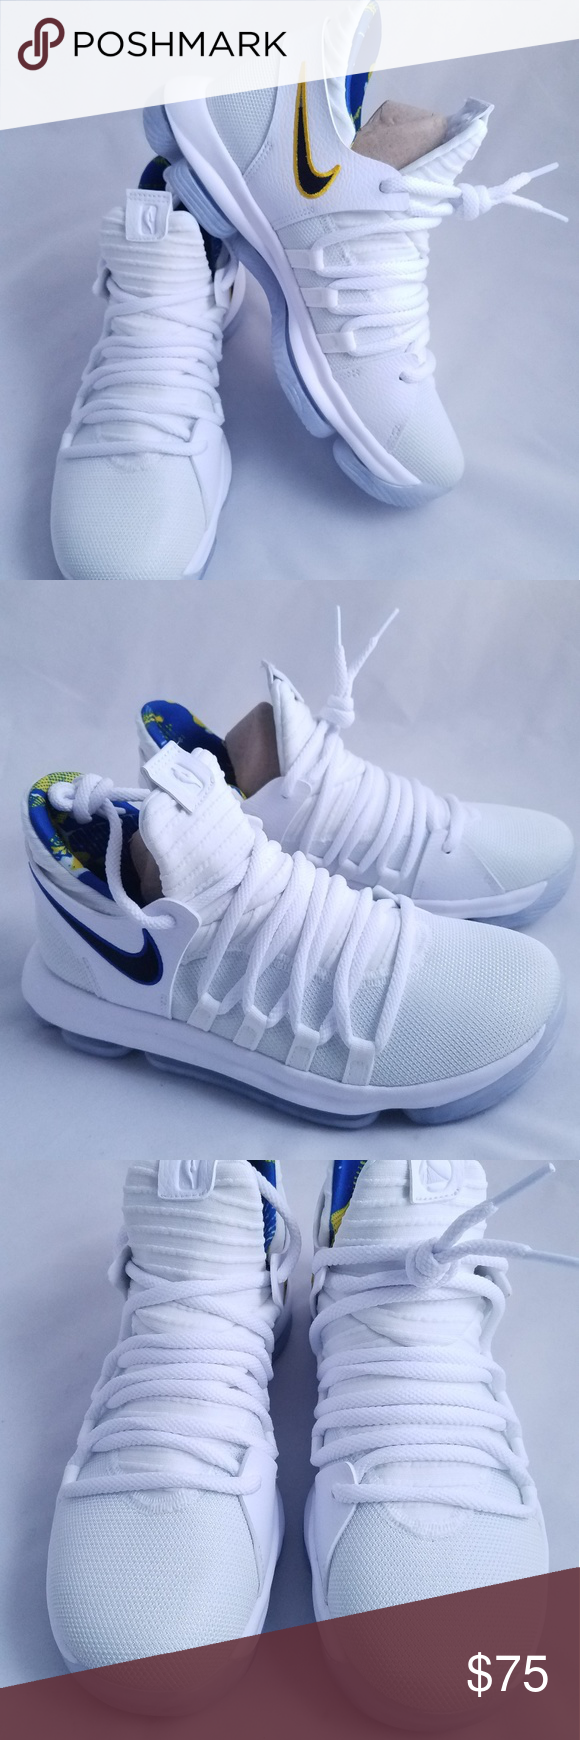 New Nike KD 10 NBA Golden State limited